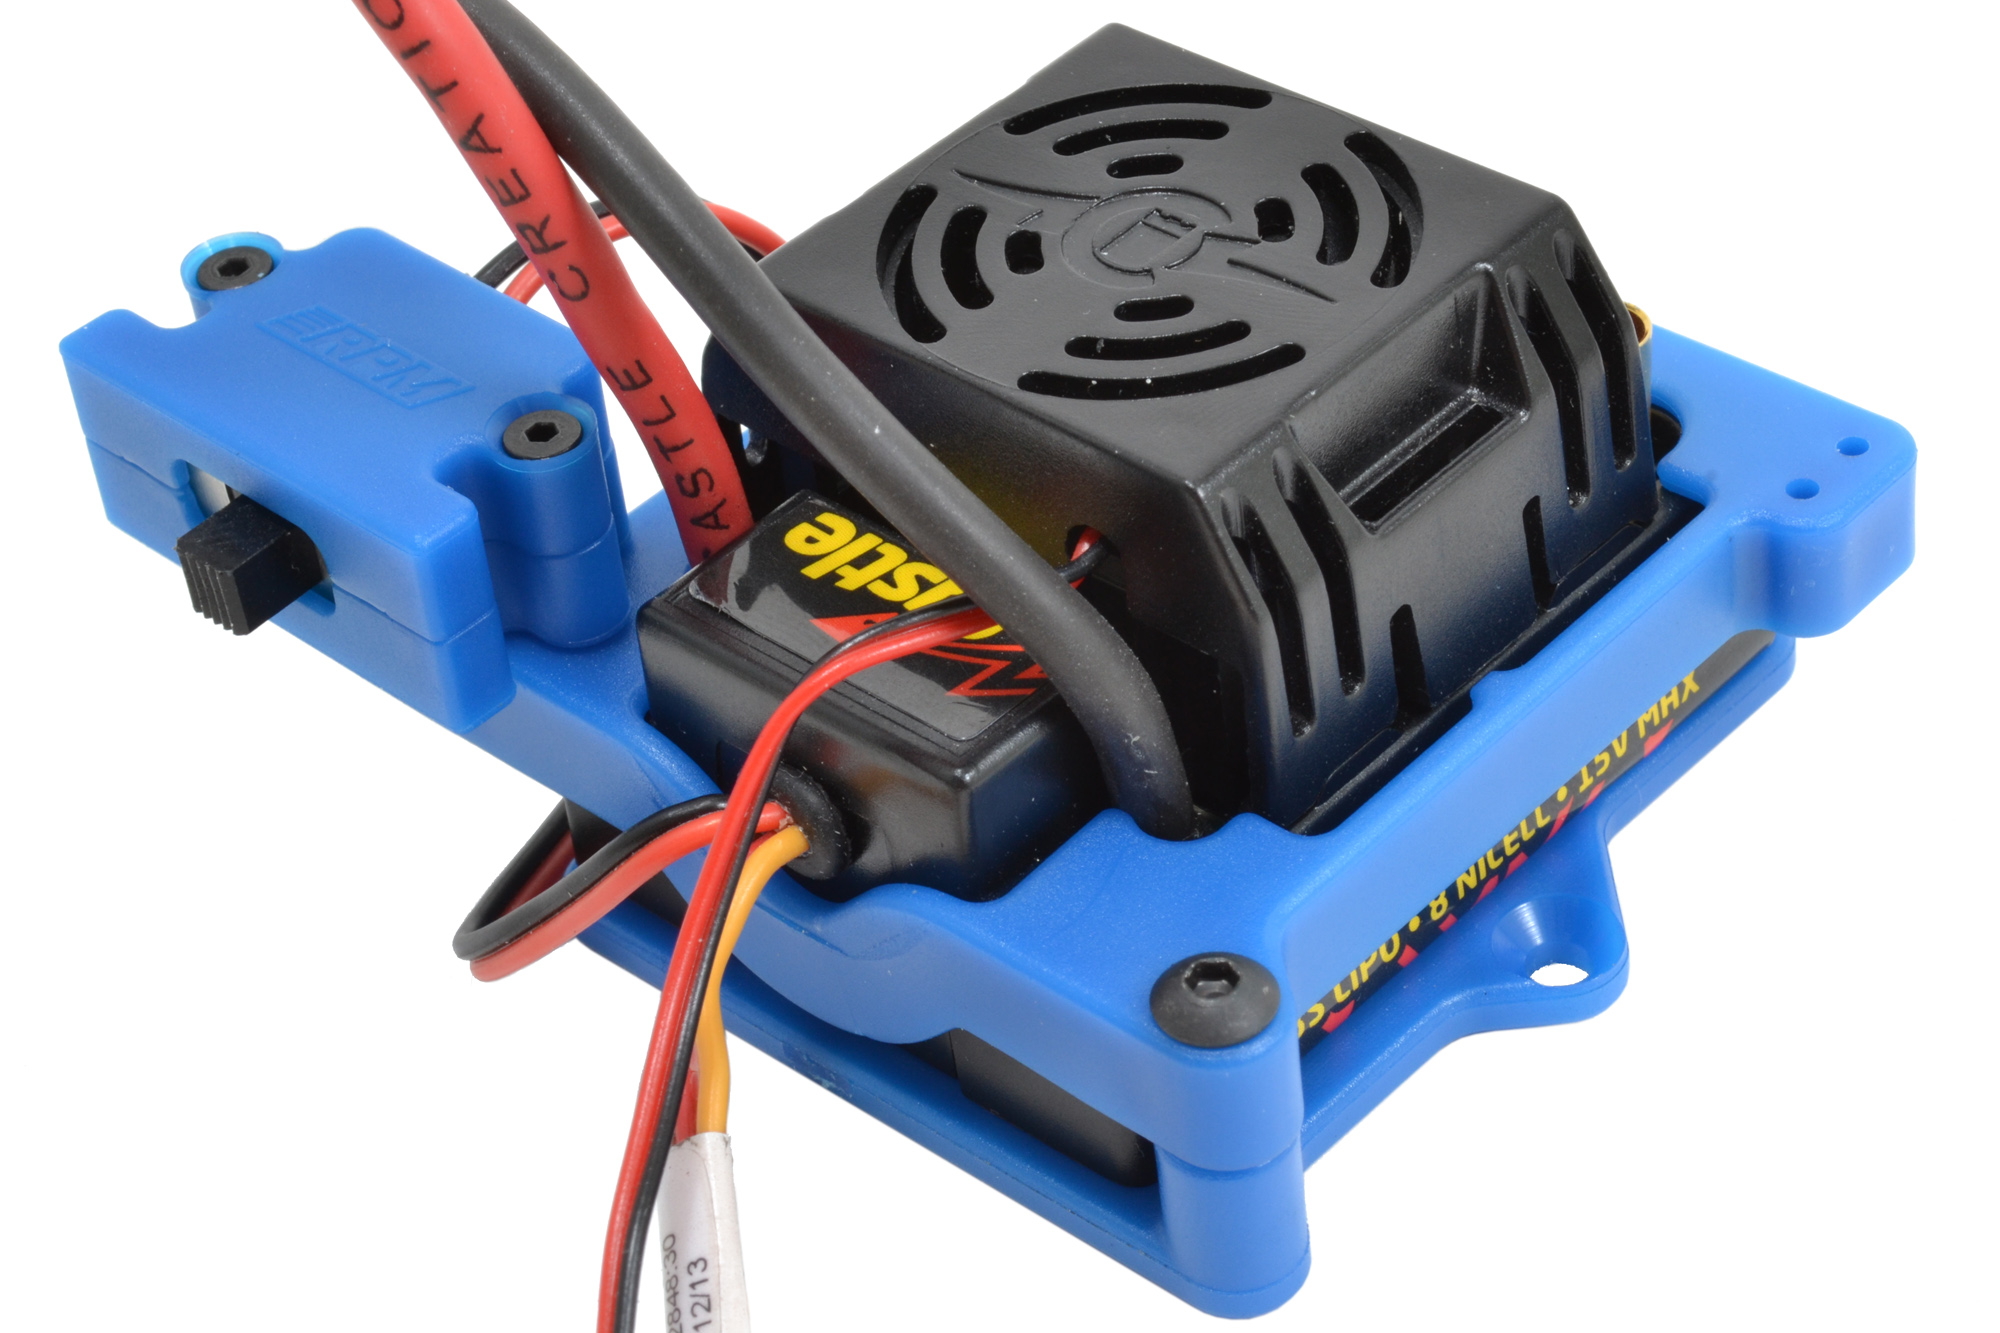 ESC Cage for the Castle Sidewinder 3 & Sidewinder SCT - RPM R/C Products